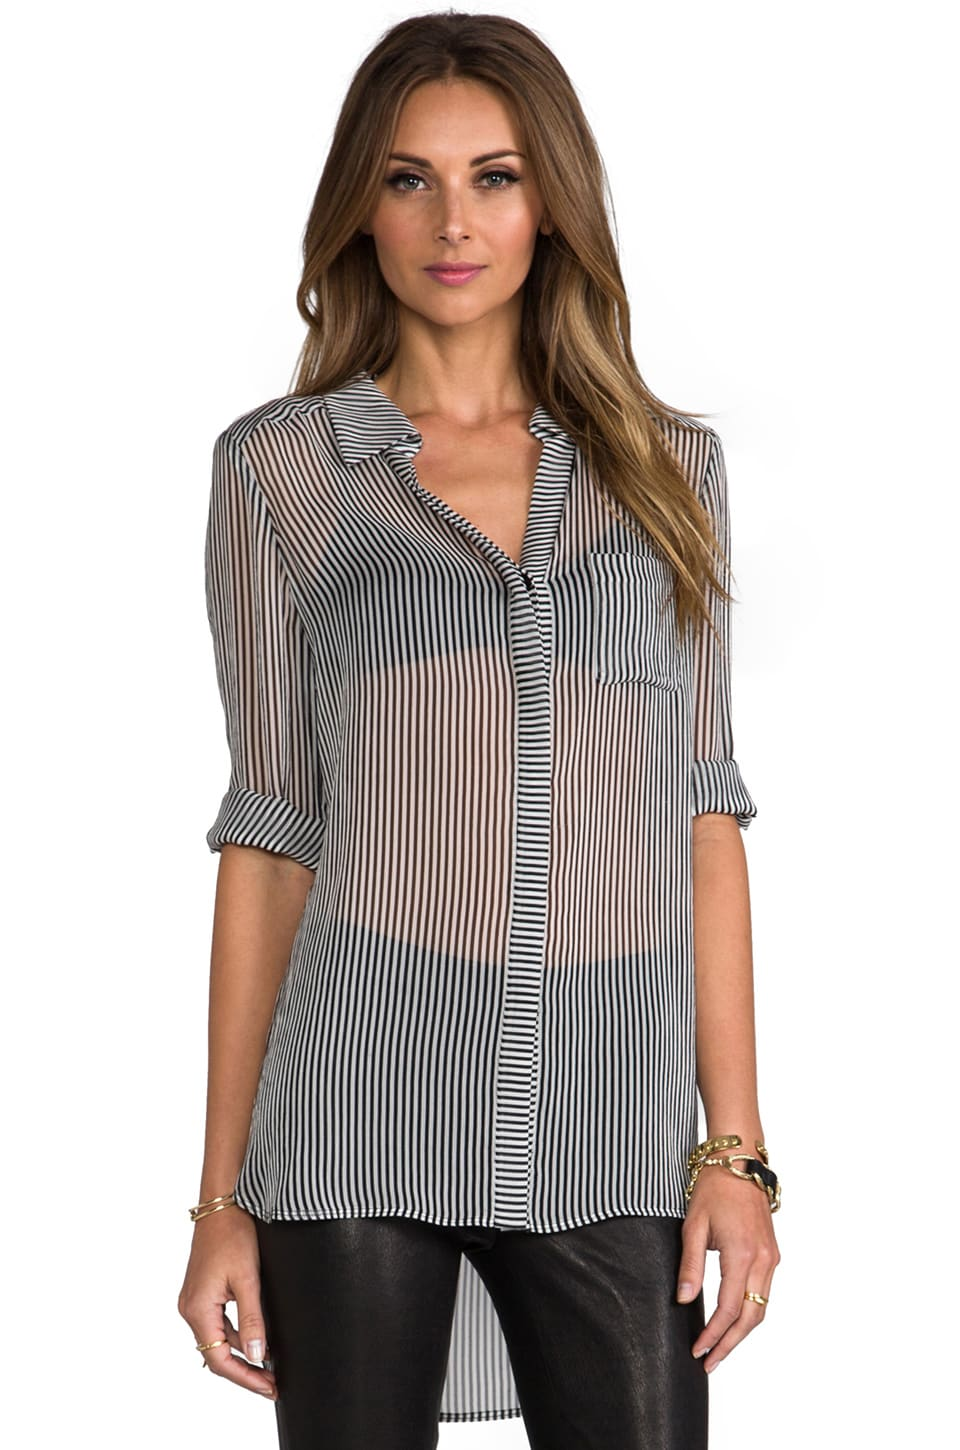 Diane von Furstenberg RUNWAY Lorelei Print Top in Simple Stripe White